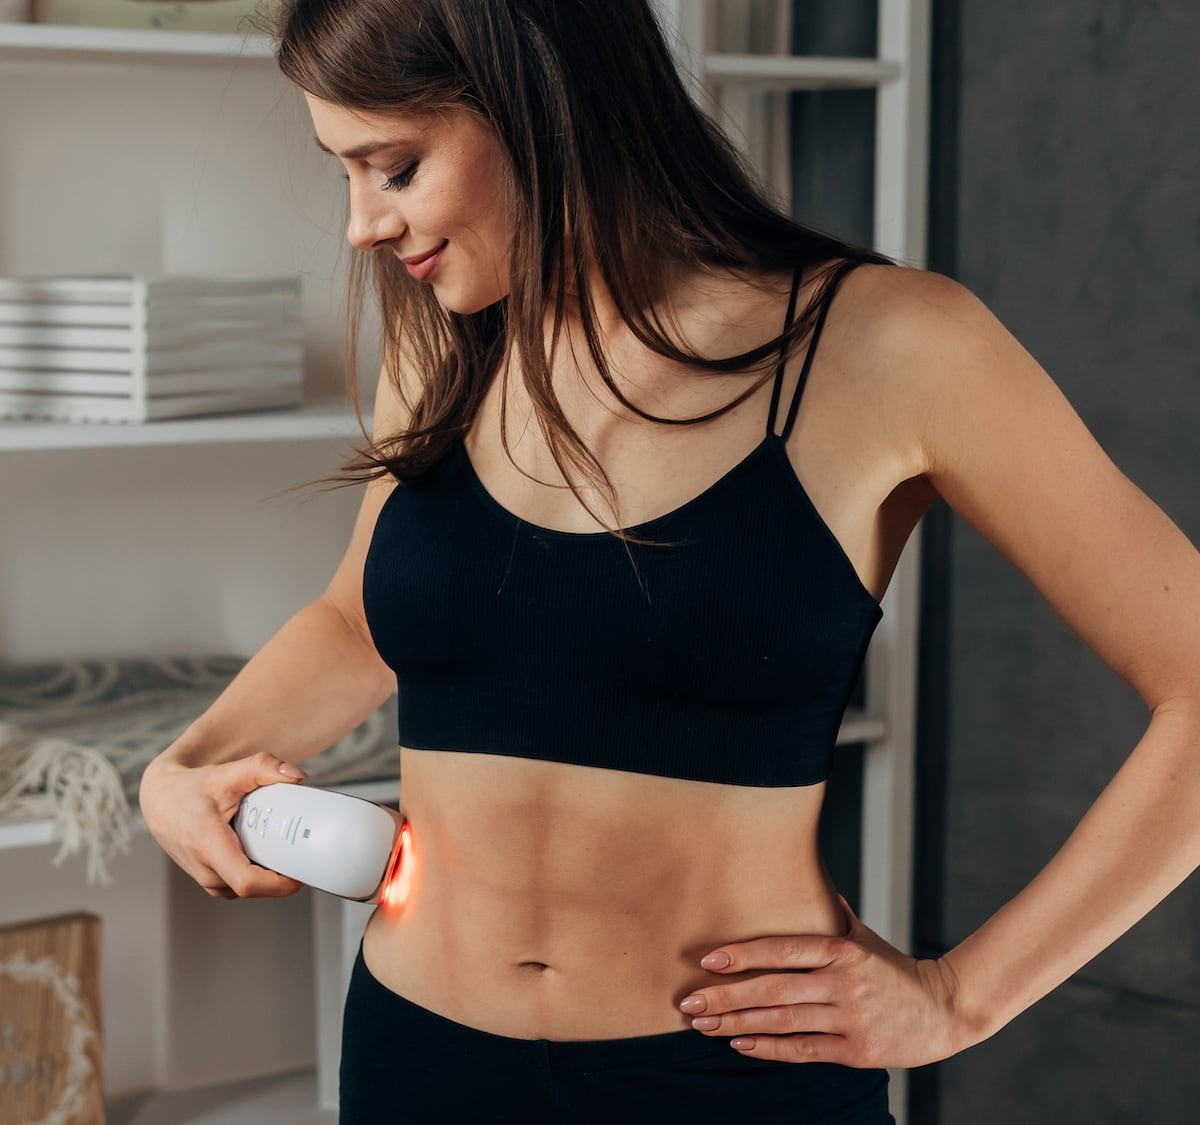 Fat Iron Body Toner is FDA cleared and clinically tested for home use to iron off fat